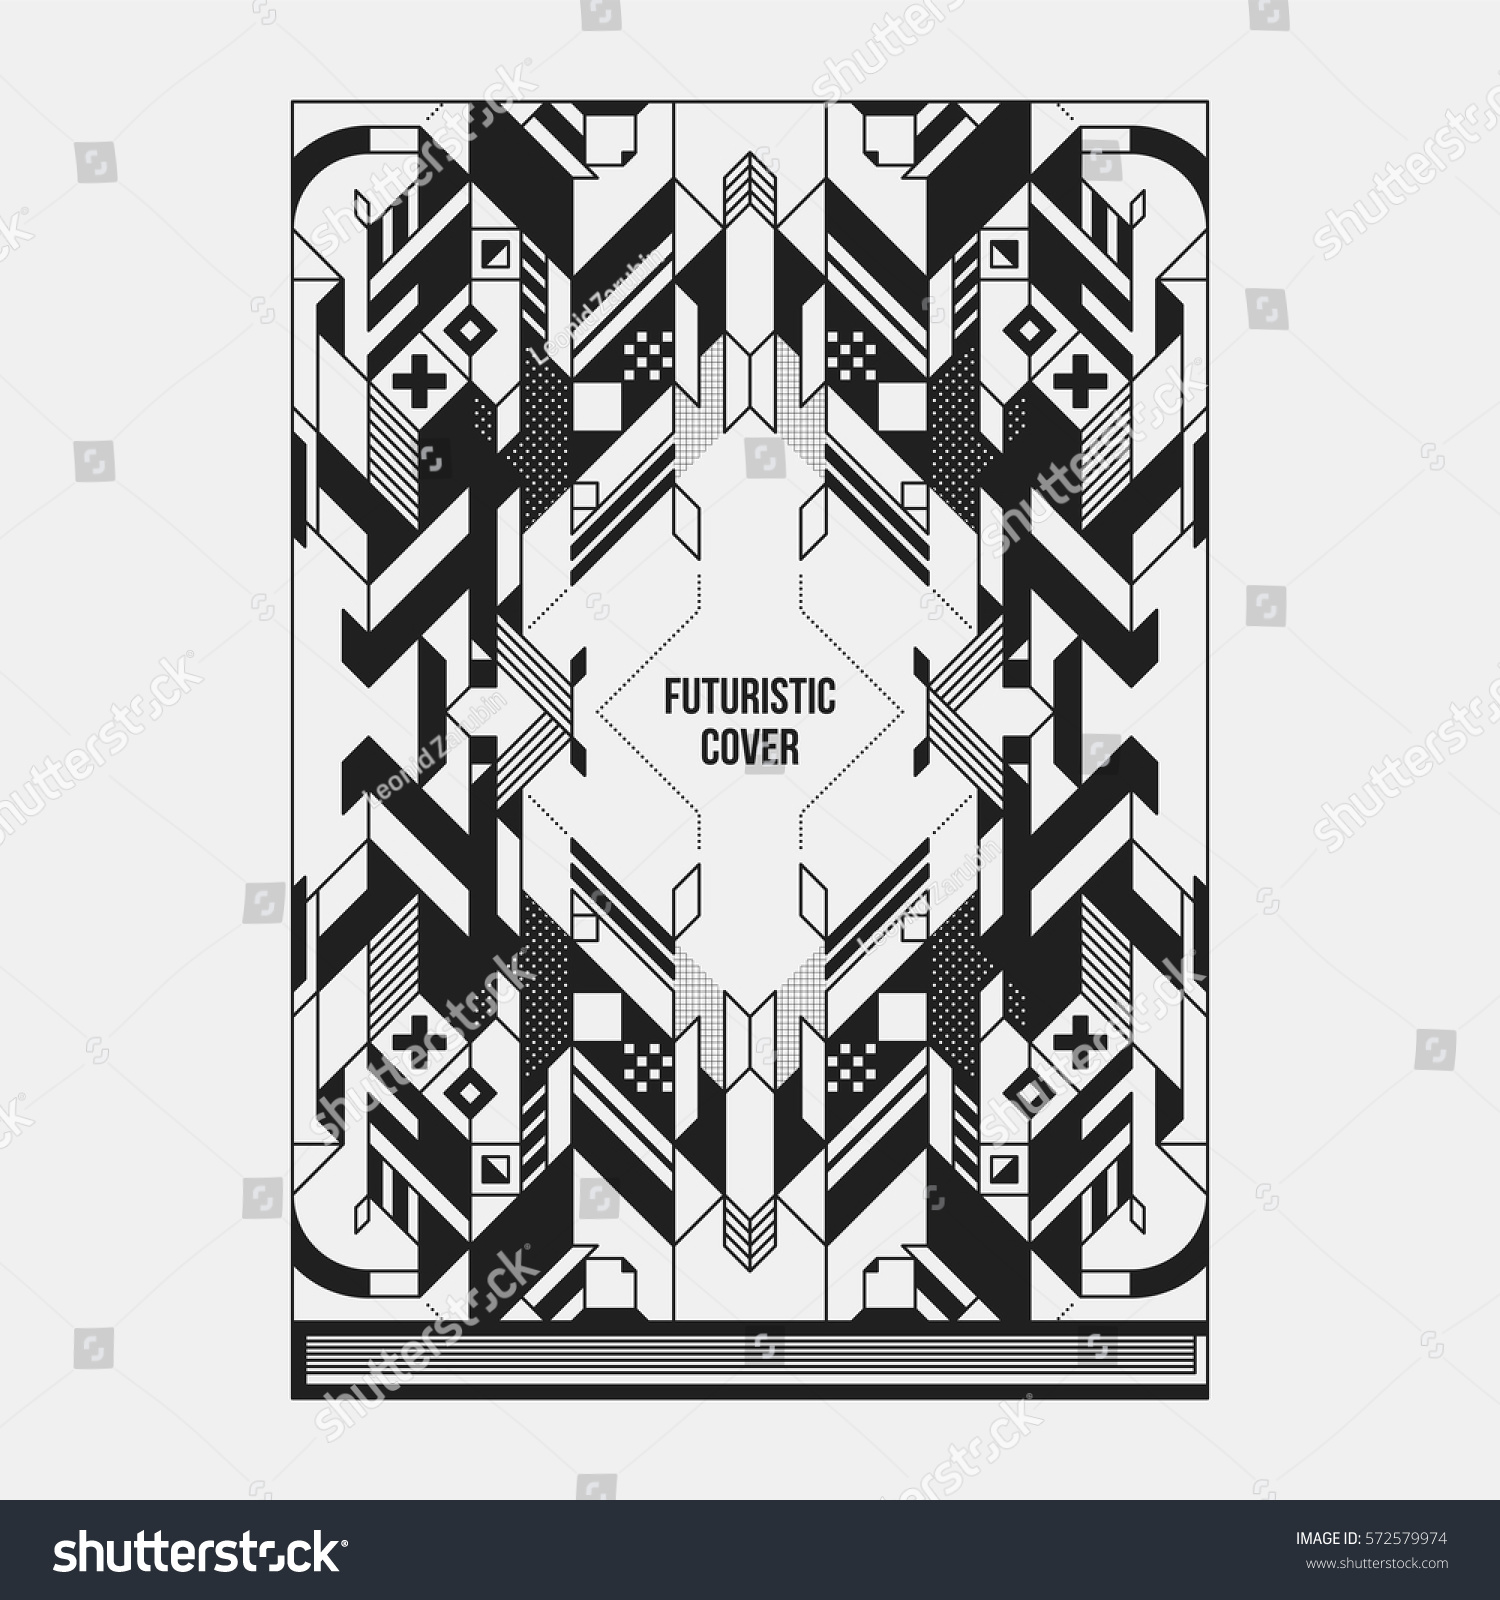 Bookpostermagazine Cover Design Template Abstract Symmetric Stock ...